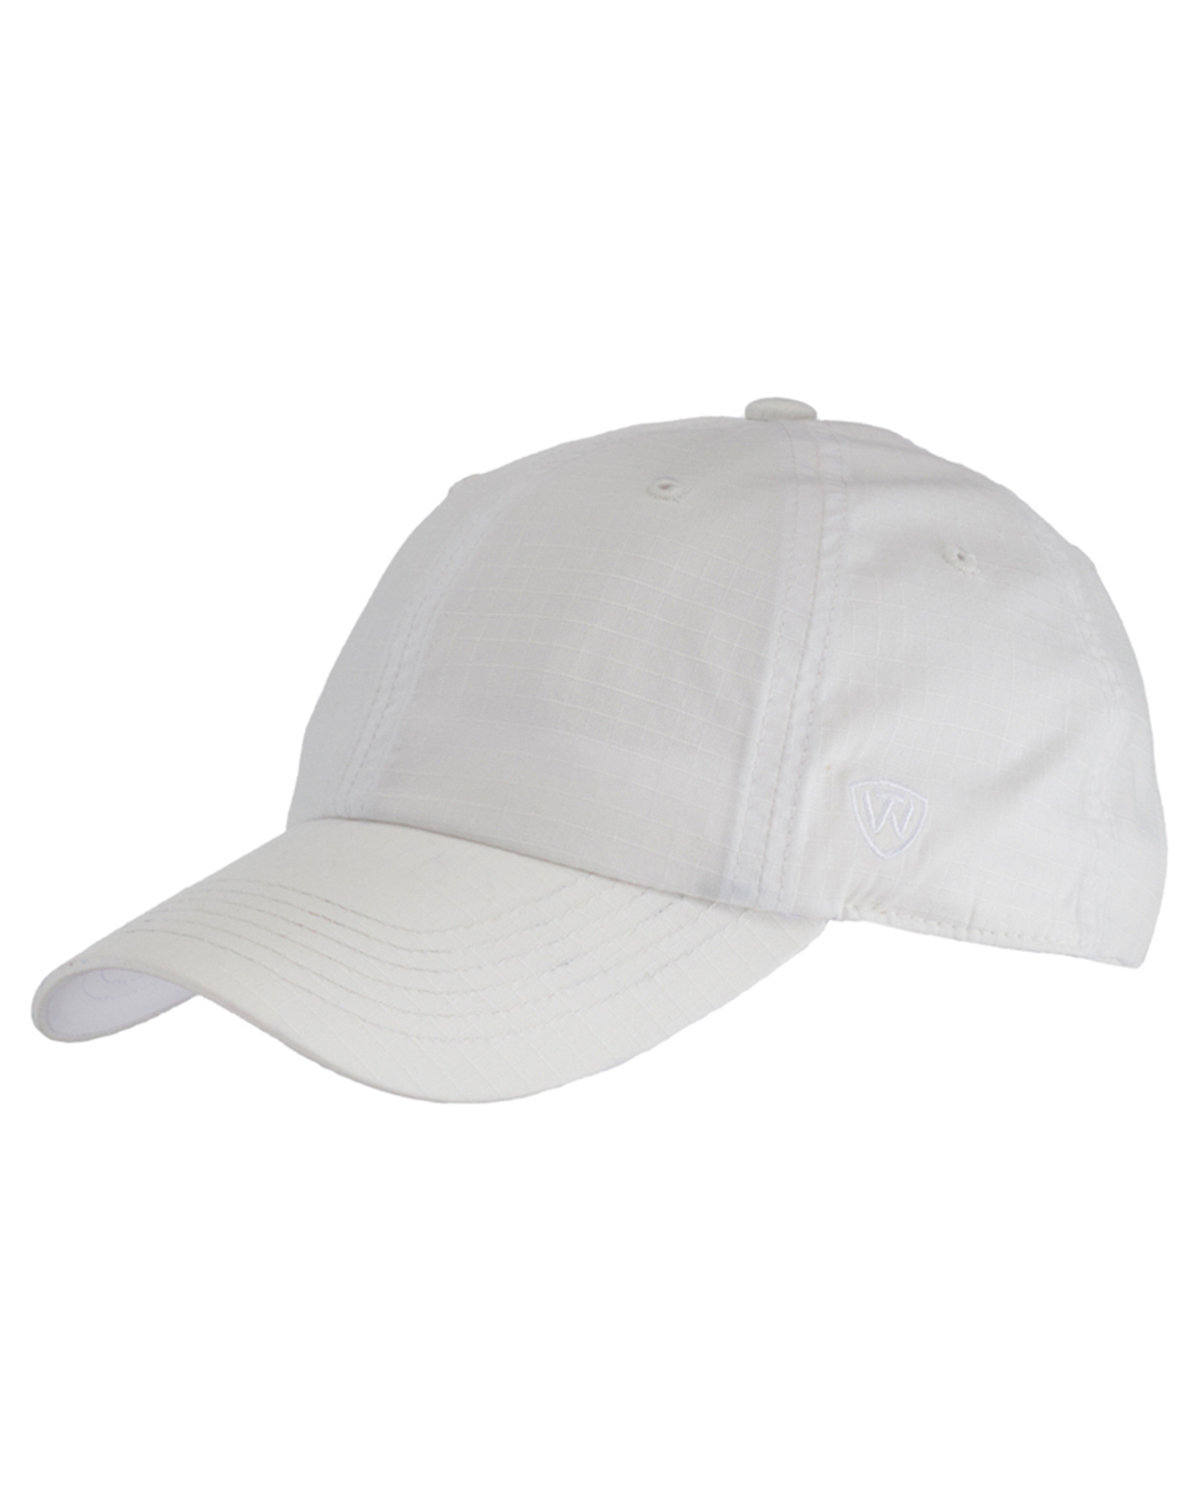 Top Of The World Ripper Washed Cotton Ripstop Hat WHITE